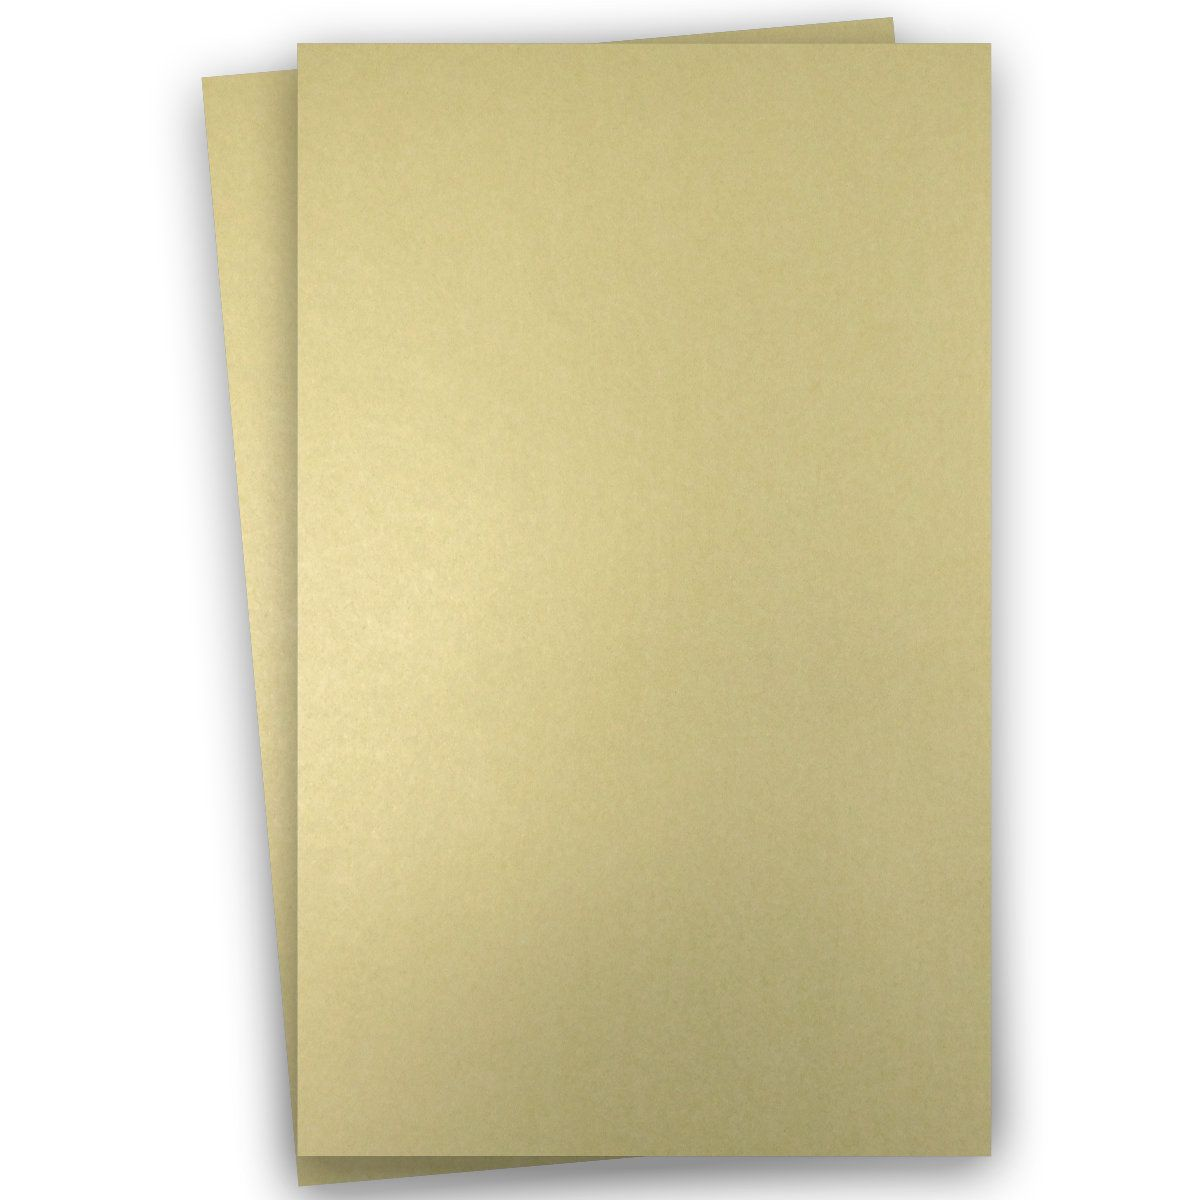 Shine Light Gold Shimmer Metallic Card Stock Paper 11x17 Ledger Size 107lb Cover 290gsm 100 Pk In 2020 Metallic Paper Gold Shimmer Light Gold Color